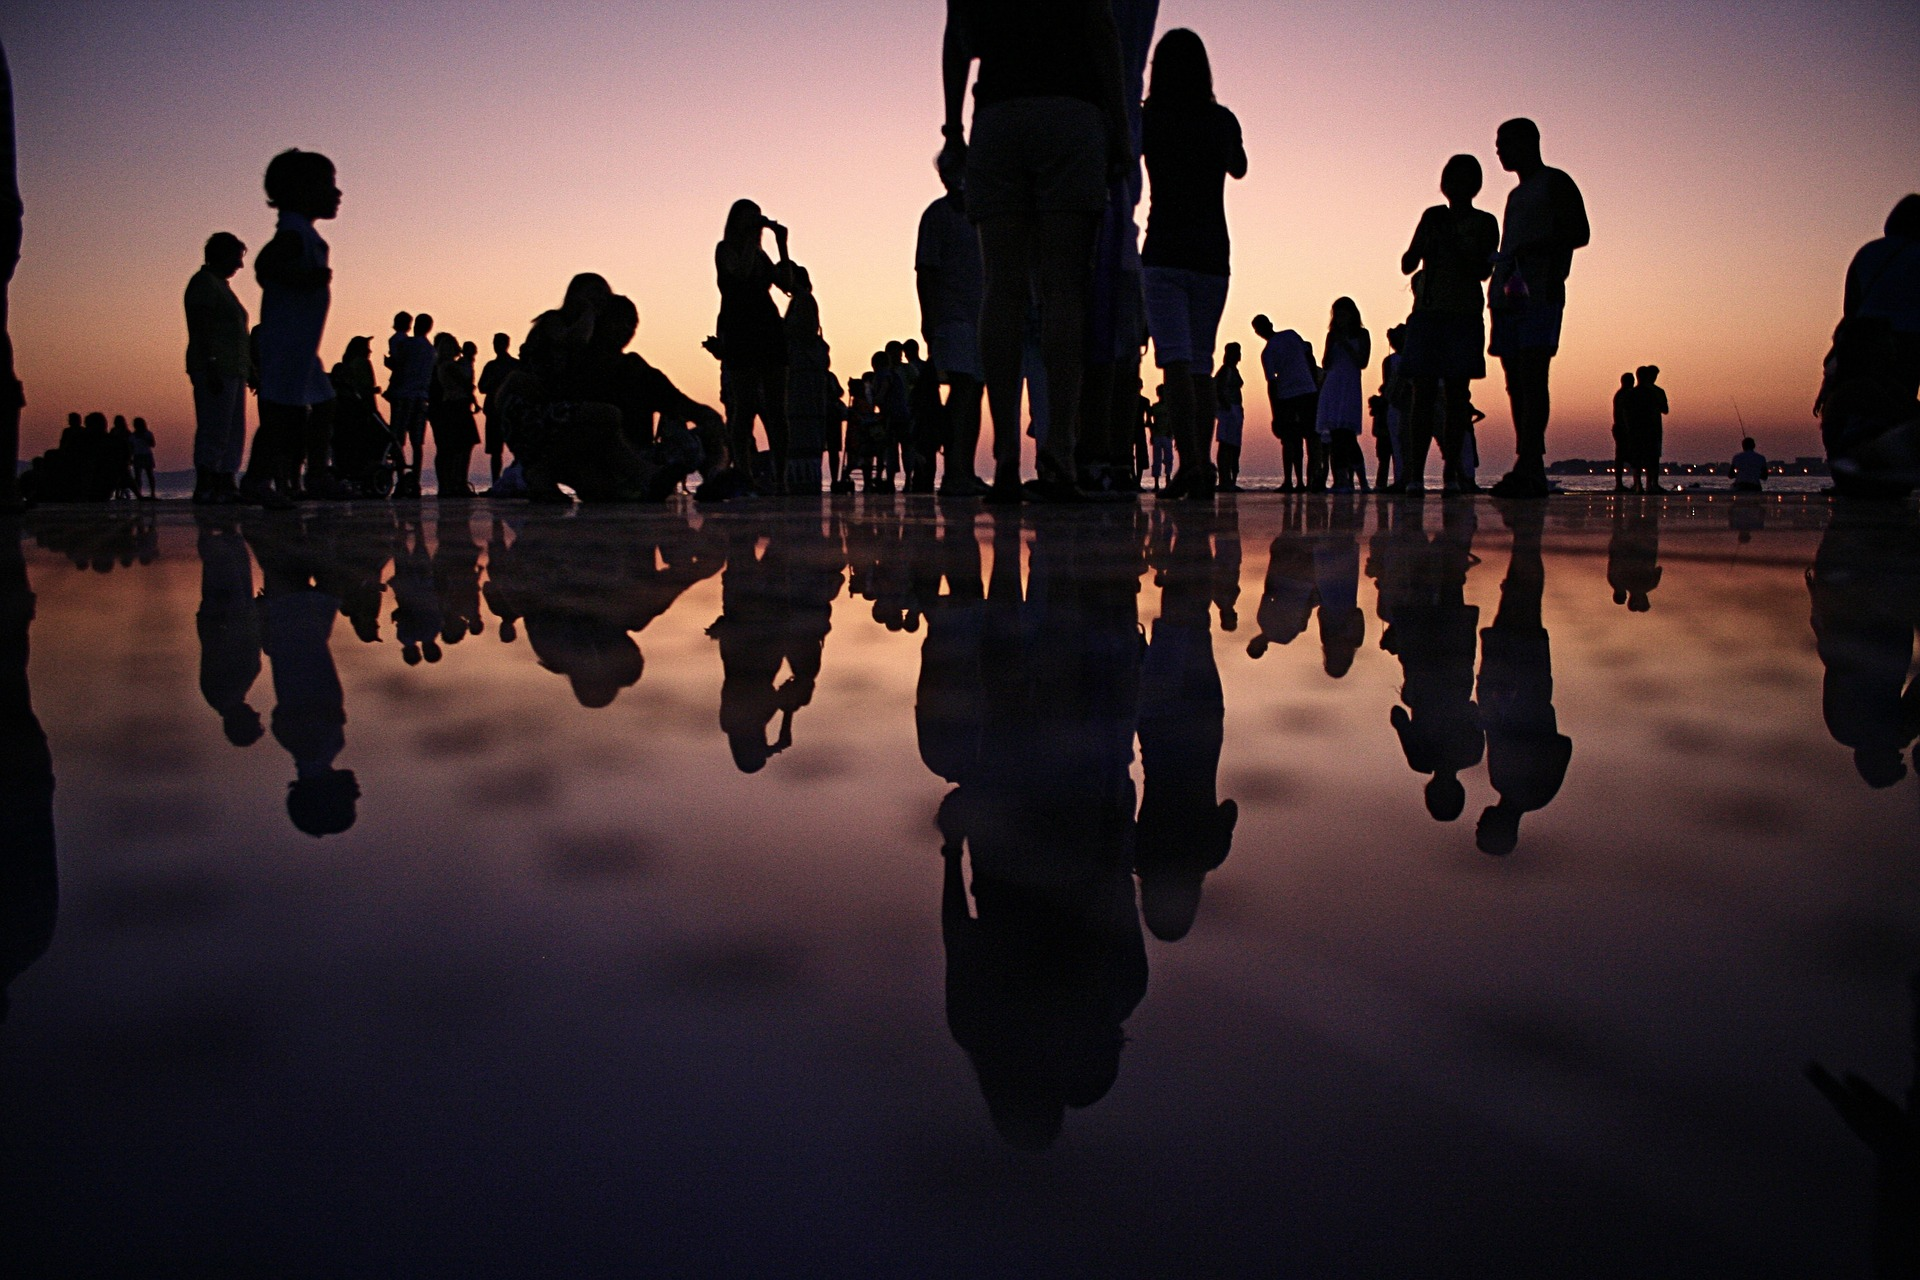 Photo of several individuals in silhouette. They are standing at the edge of a reflective surface. Some are standing, some are sitting. They range from children to adults.